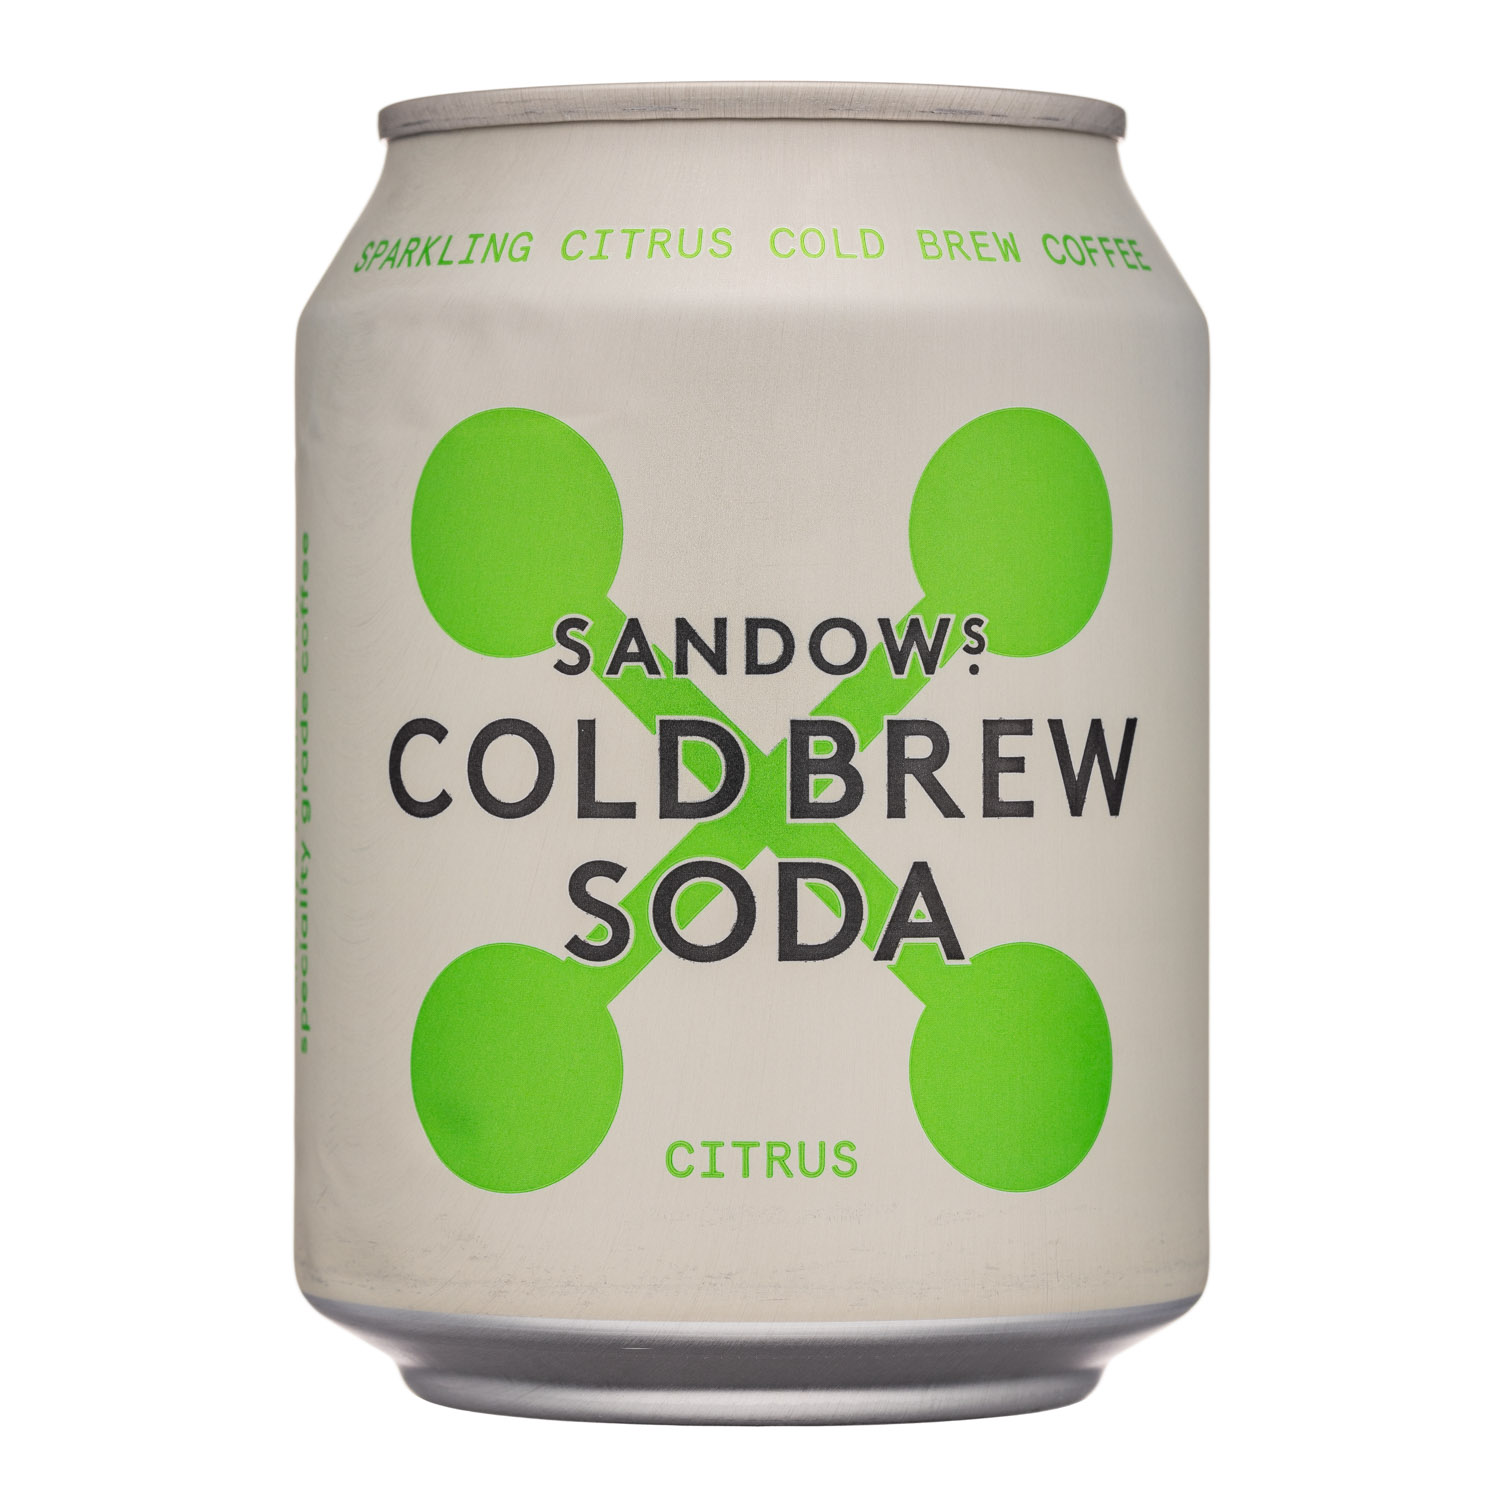 Cold Brew Soda: Citrus